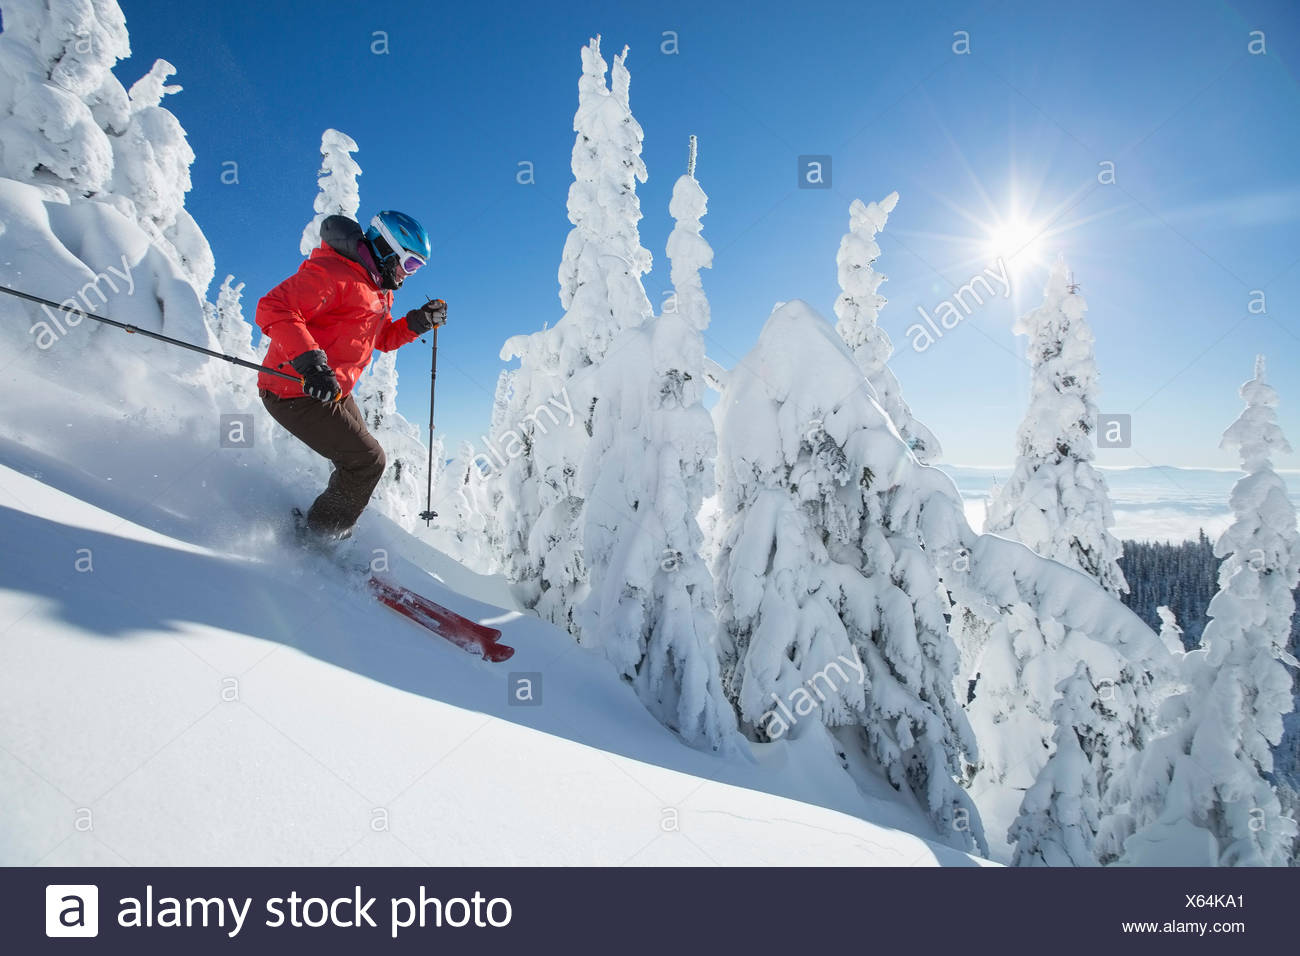 Mature woman on ski slope at sunlight - Stock Image